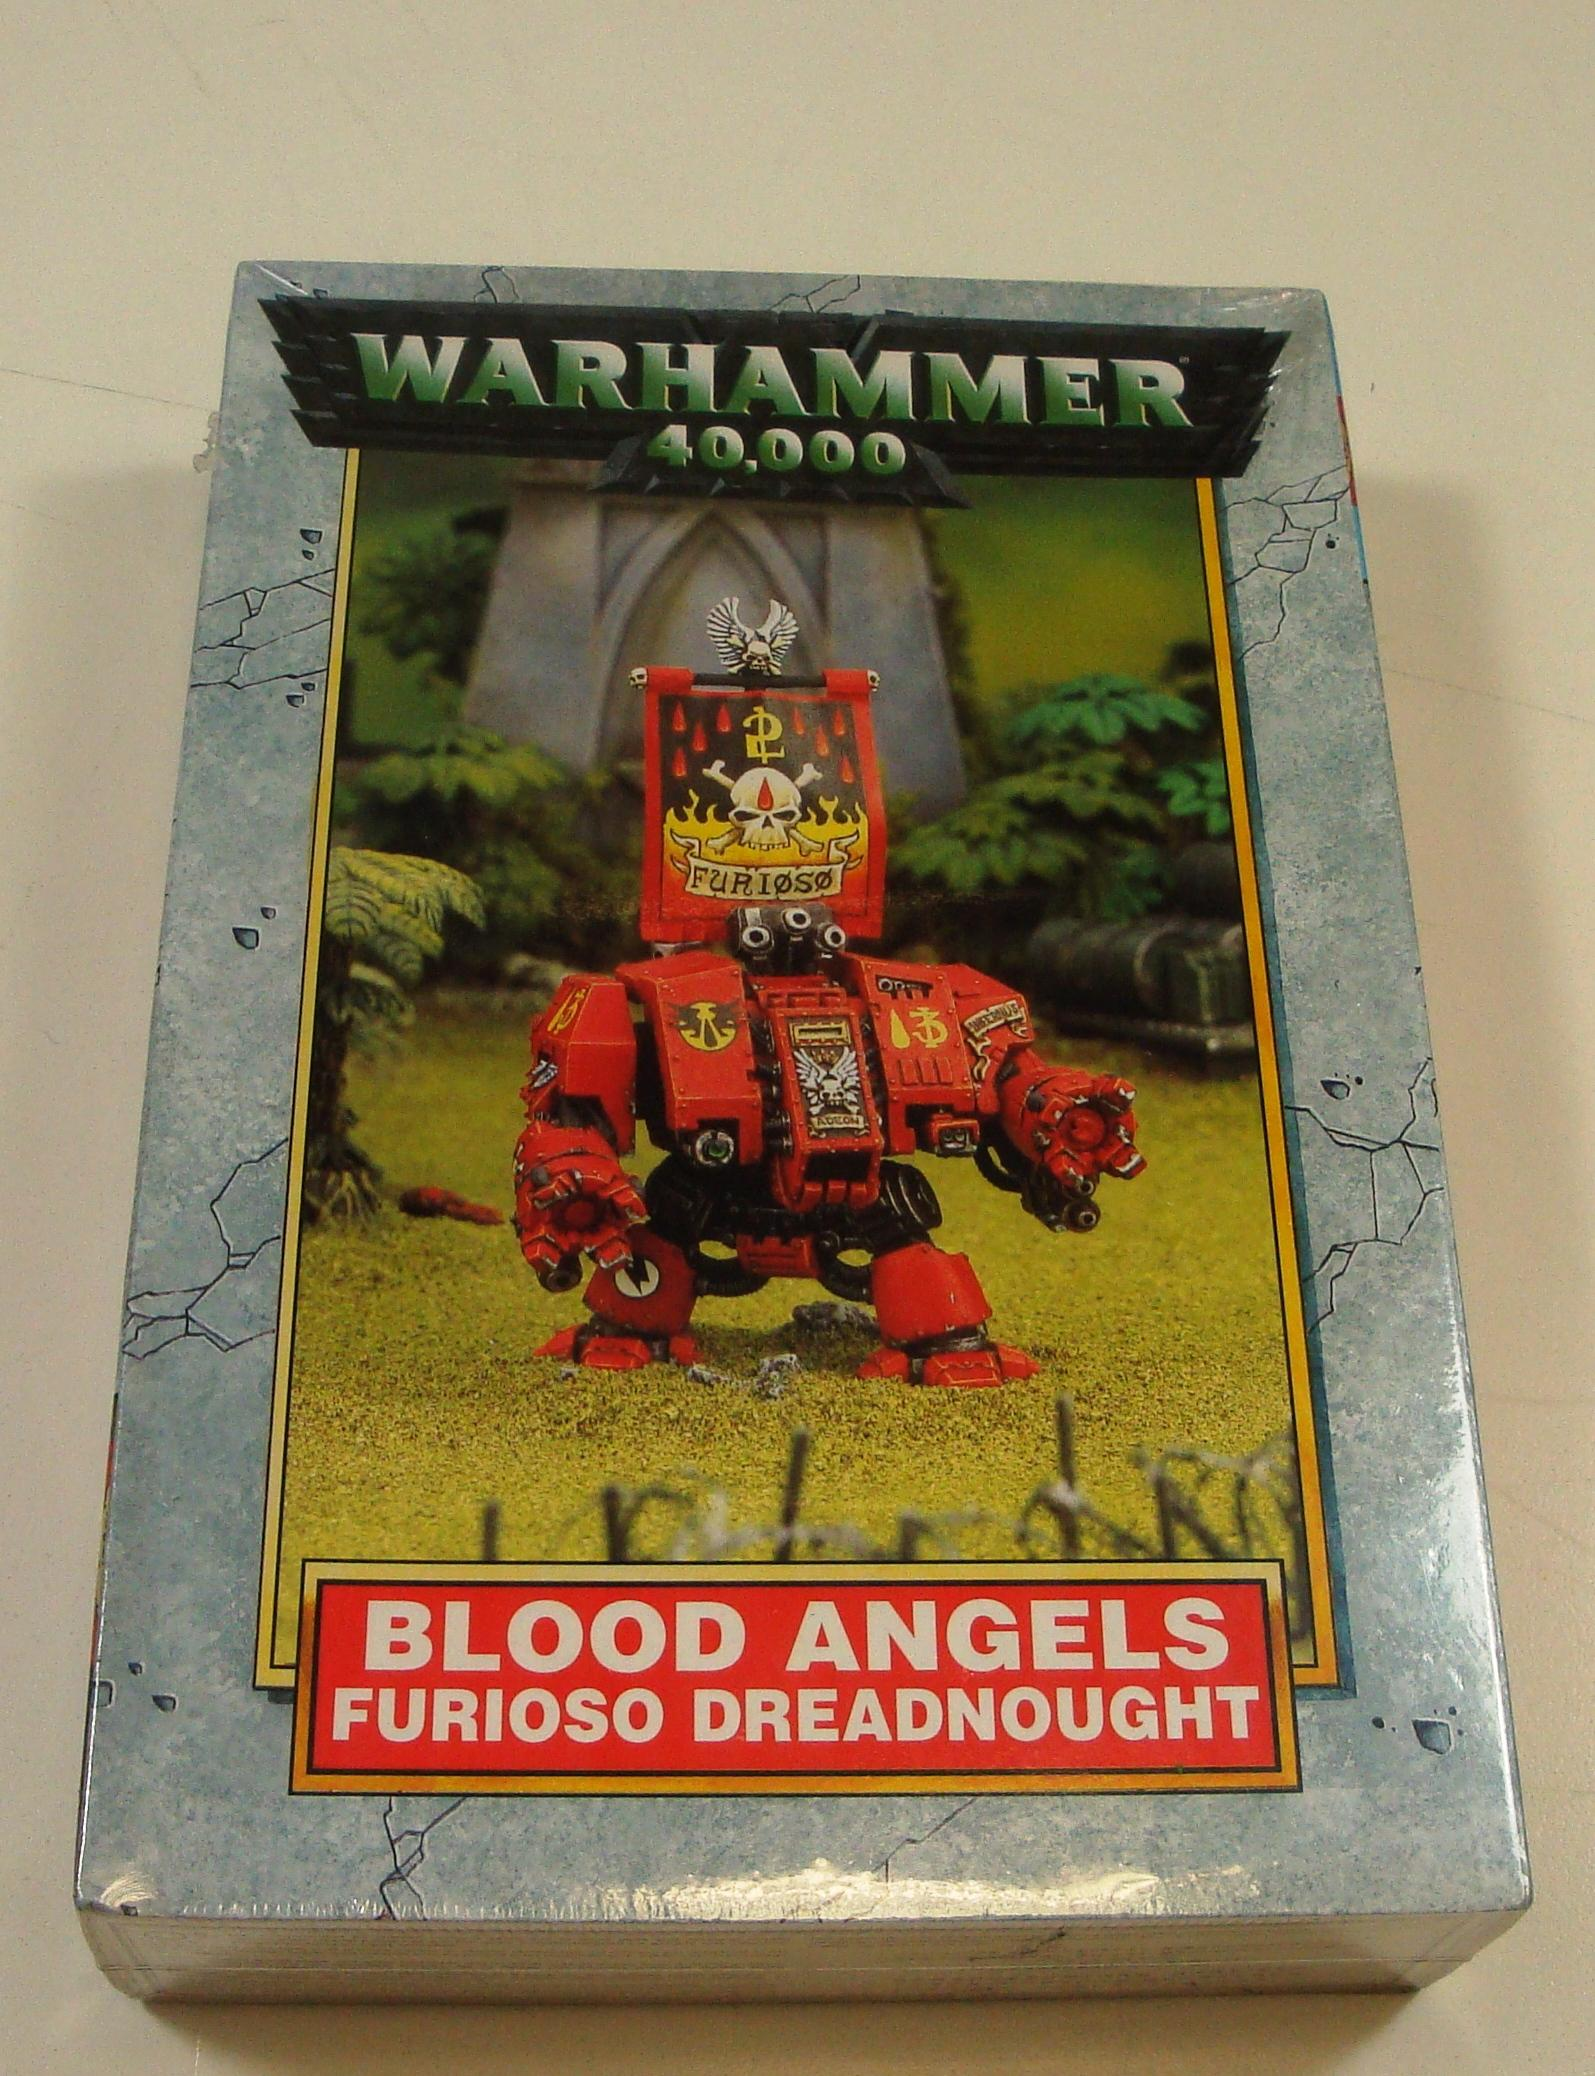 Adeptus Astartes, Astartes, Blood Angels, Dreadnought, Dreanought, Fursioso, Imperial Fists, Predator, Razorback, Rhino, Rogue Trader, Sale, Space Marines, Whirlwind